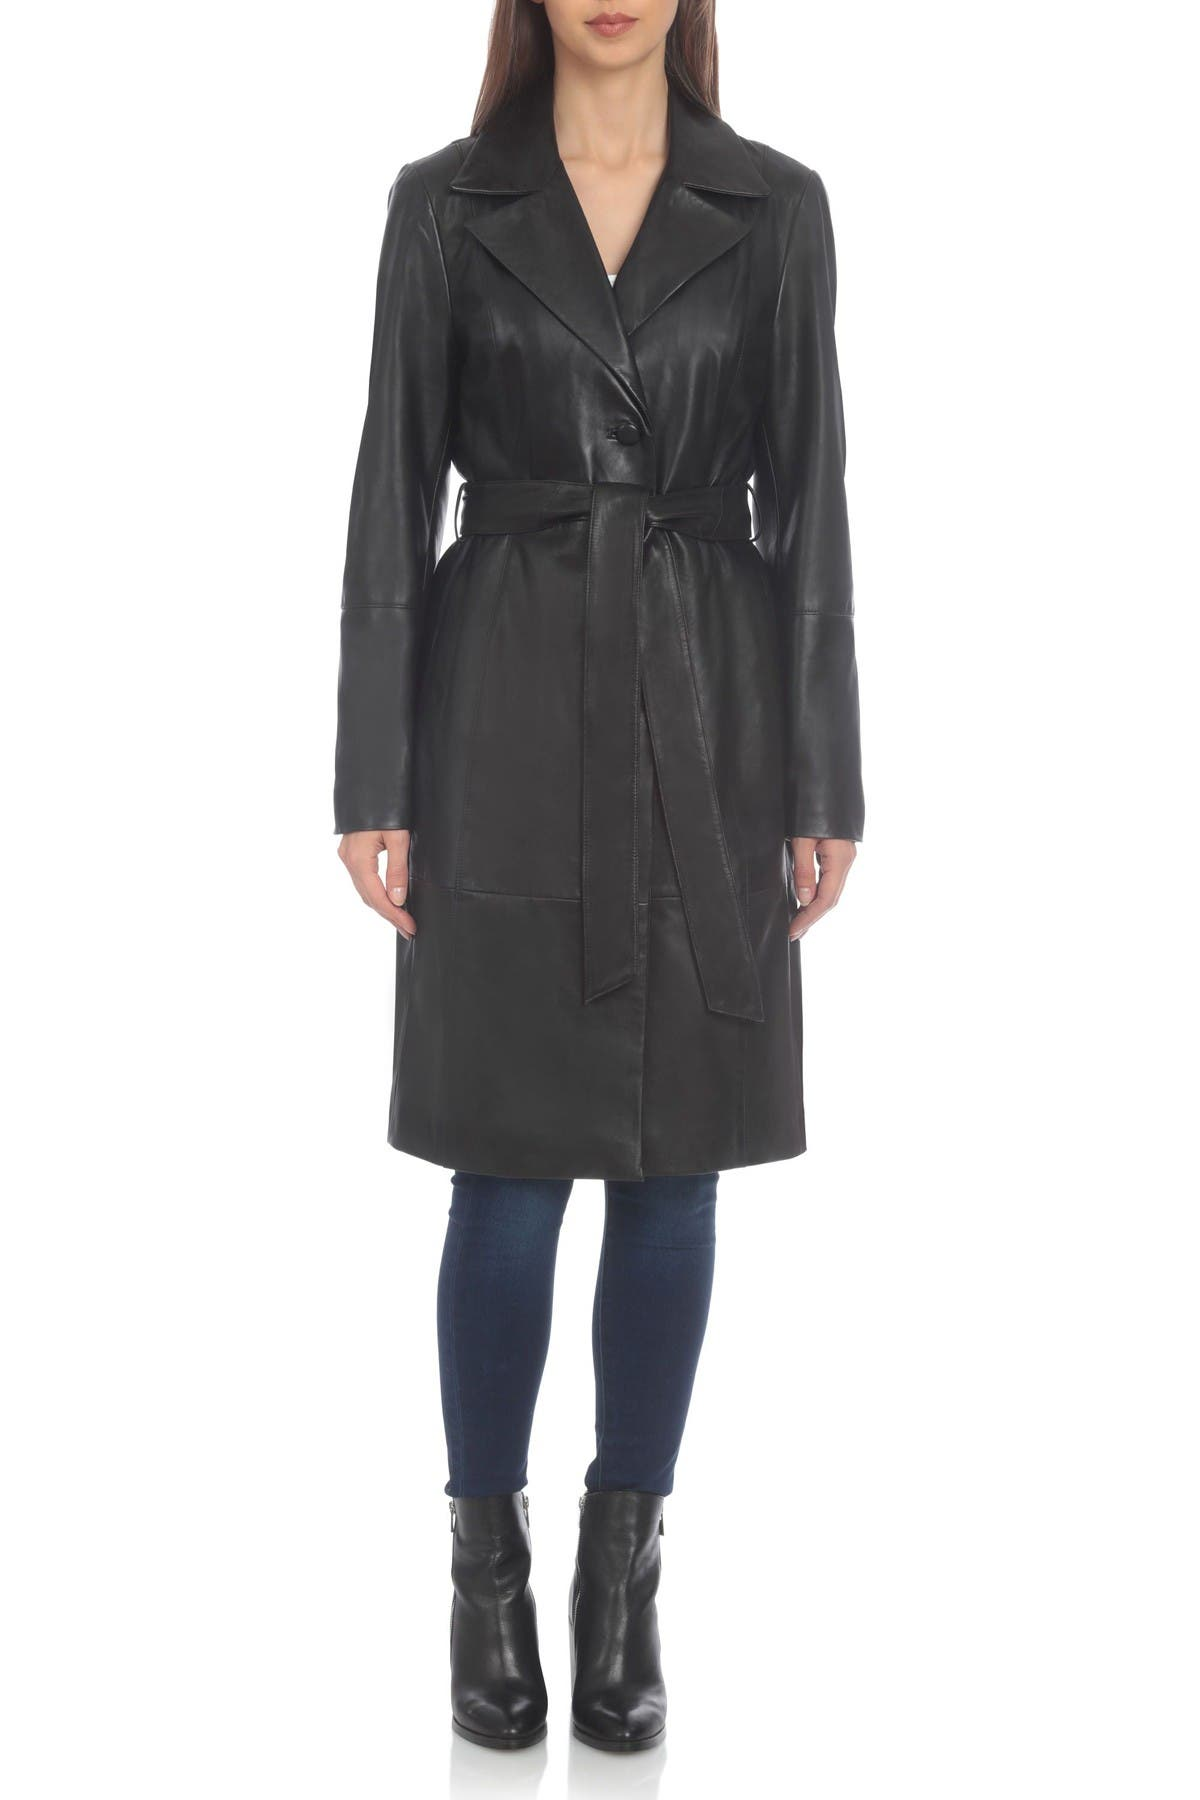 Badgley Mischka Single-Breasted Lamb Leather Trench